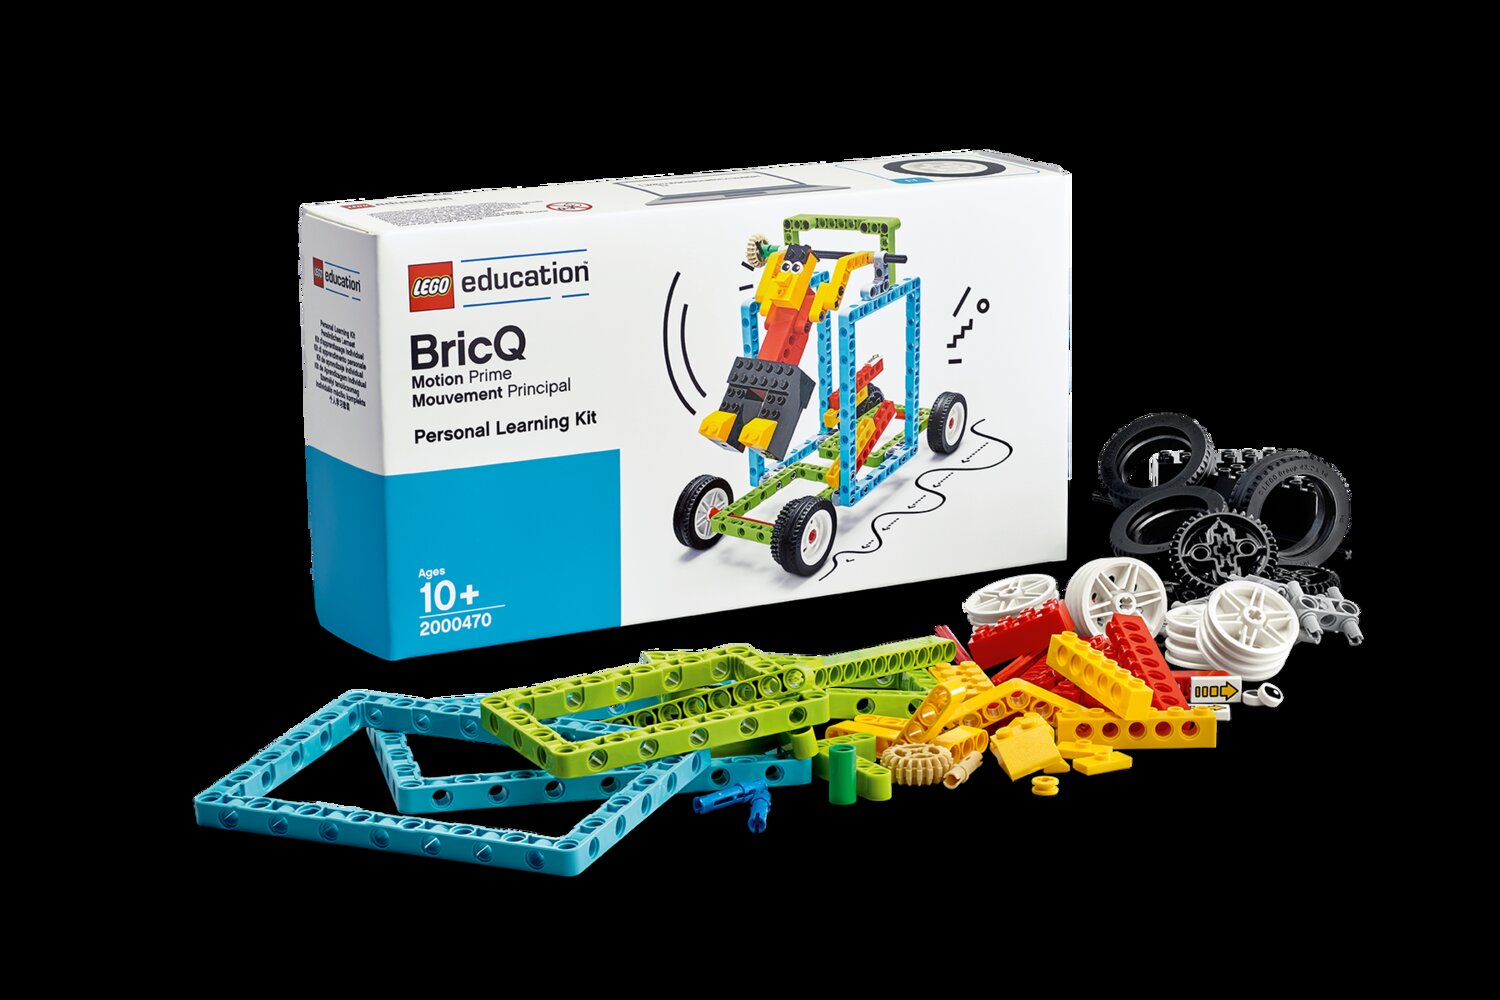 BricQ Motion Prime Personal Learning Kit